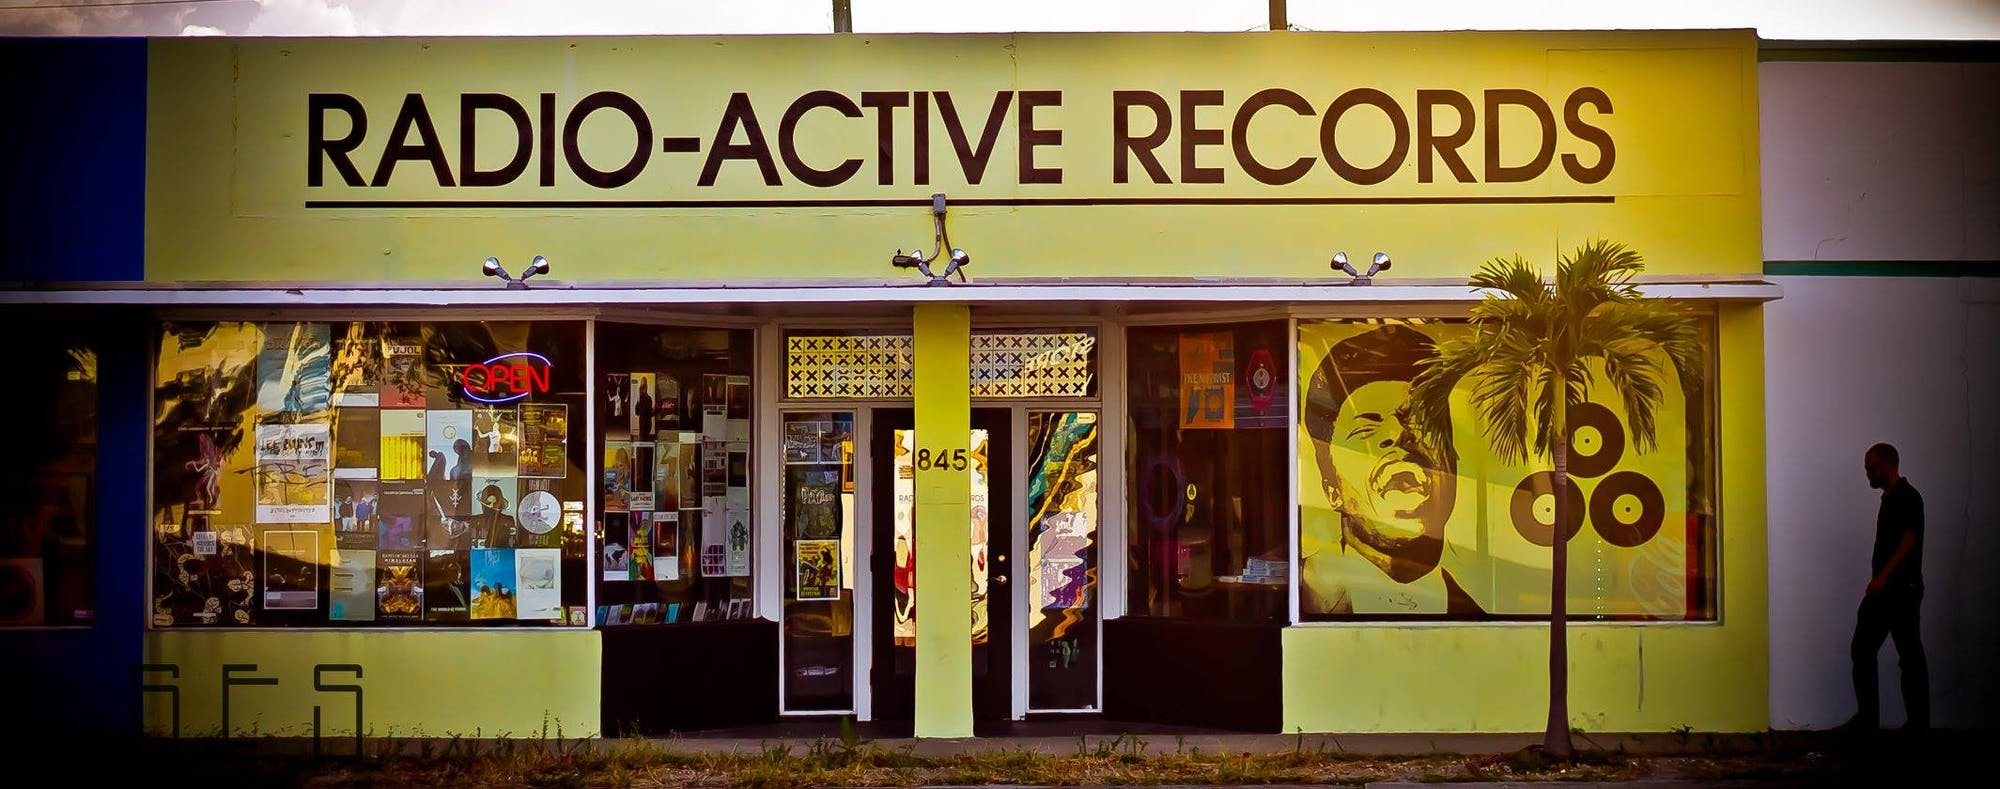 Radio-Active Records - Record Store Image